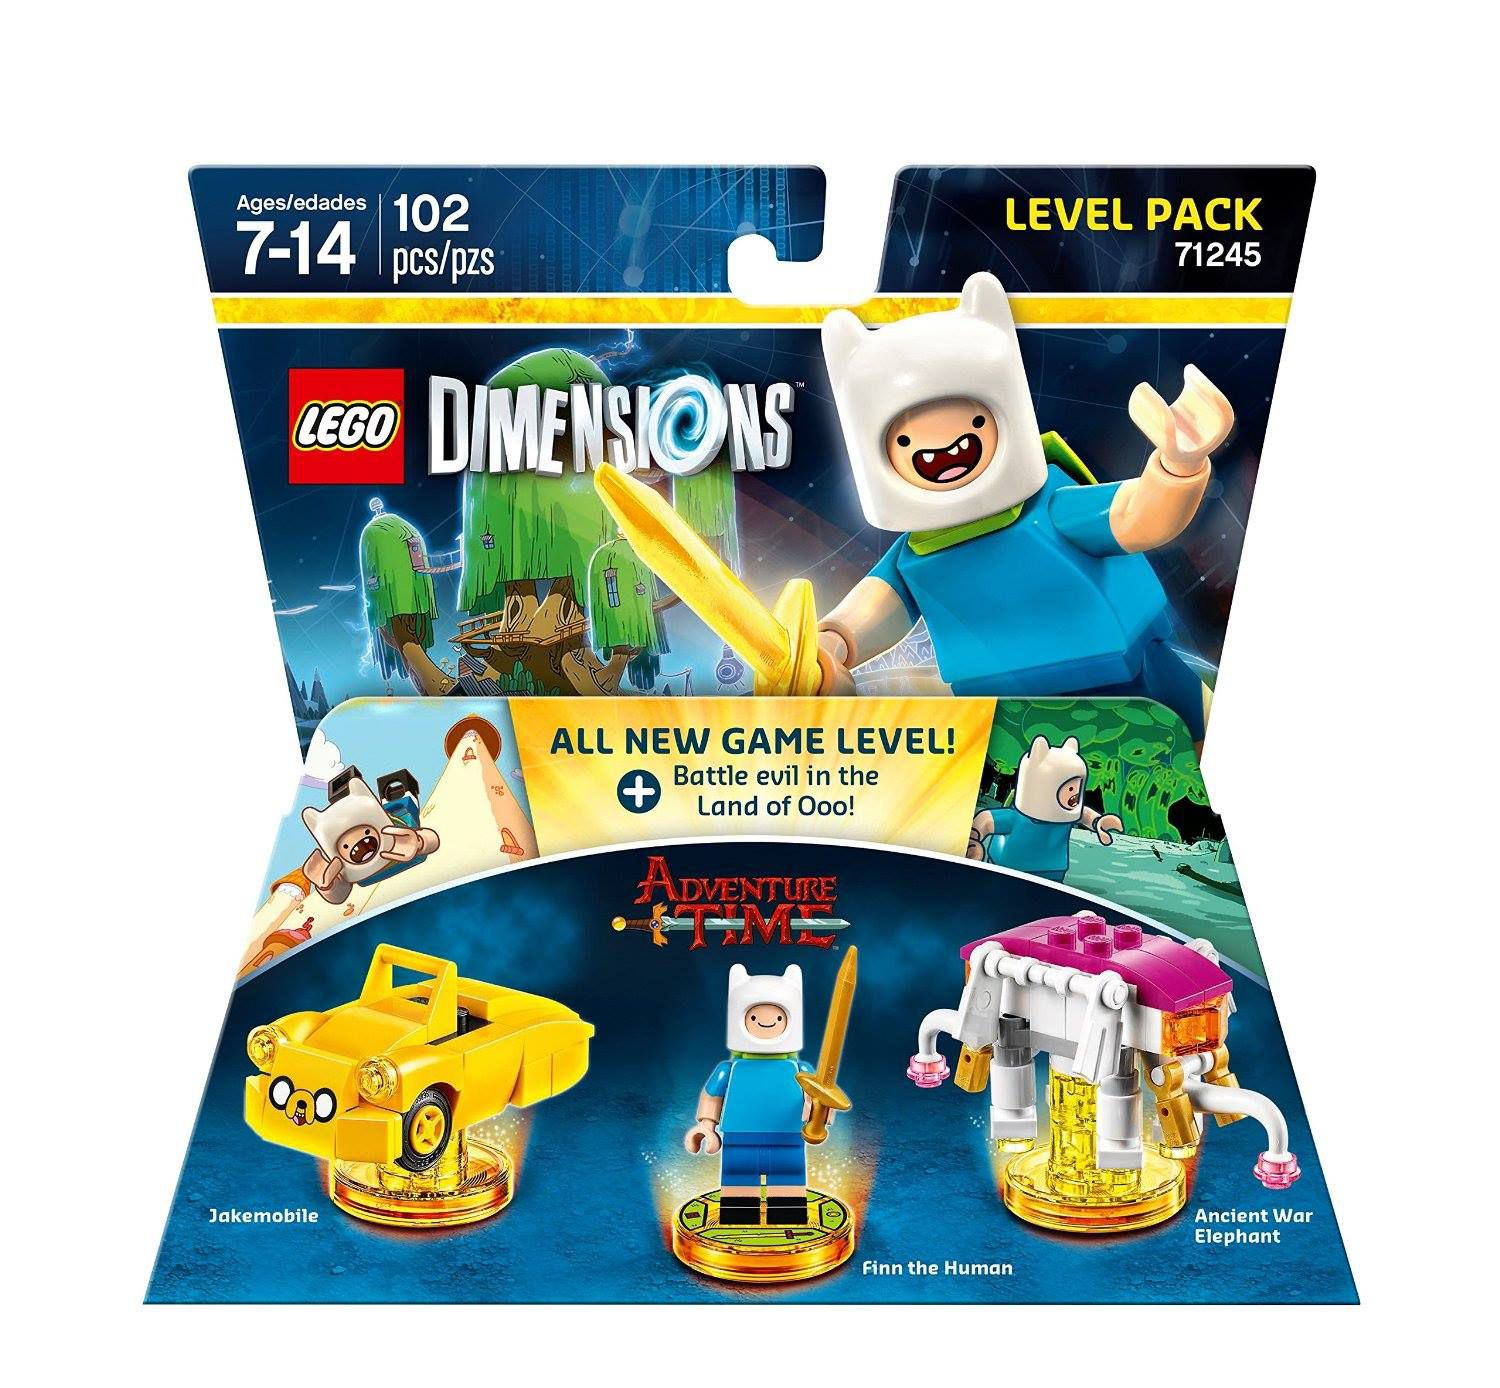 LEGO Dimensions 71245 Level Pack Adventure Time LEGO_DIMENSIONS_71245_Adventure-Time-01.jpg